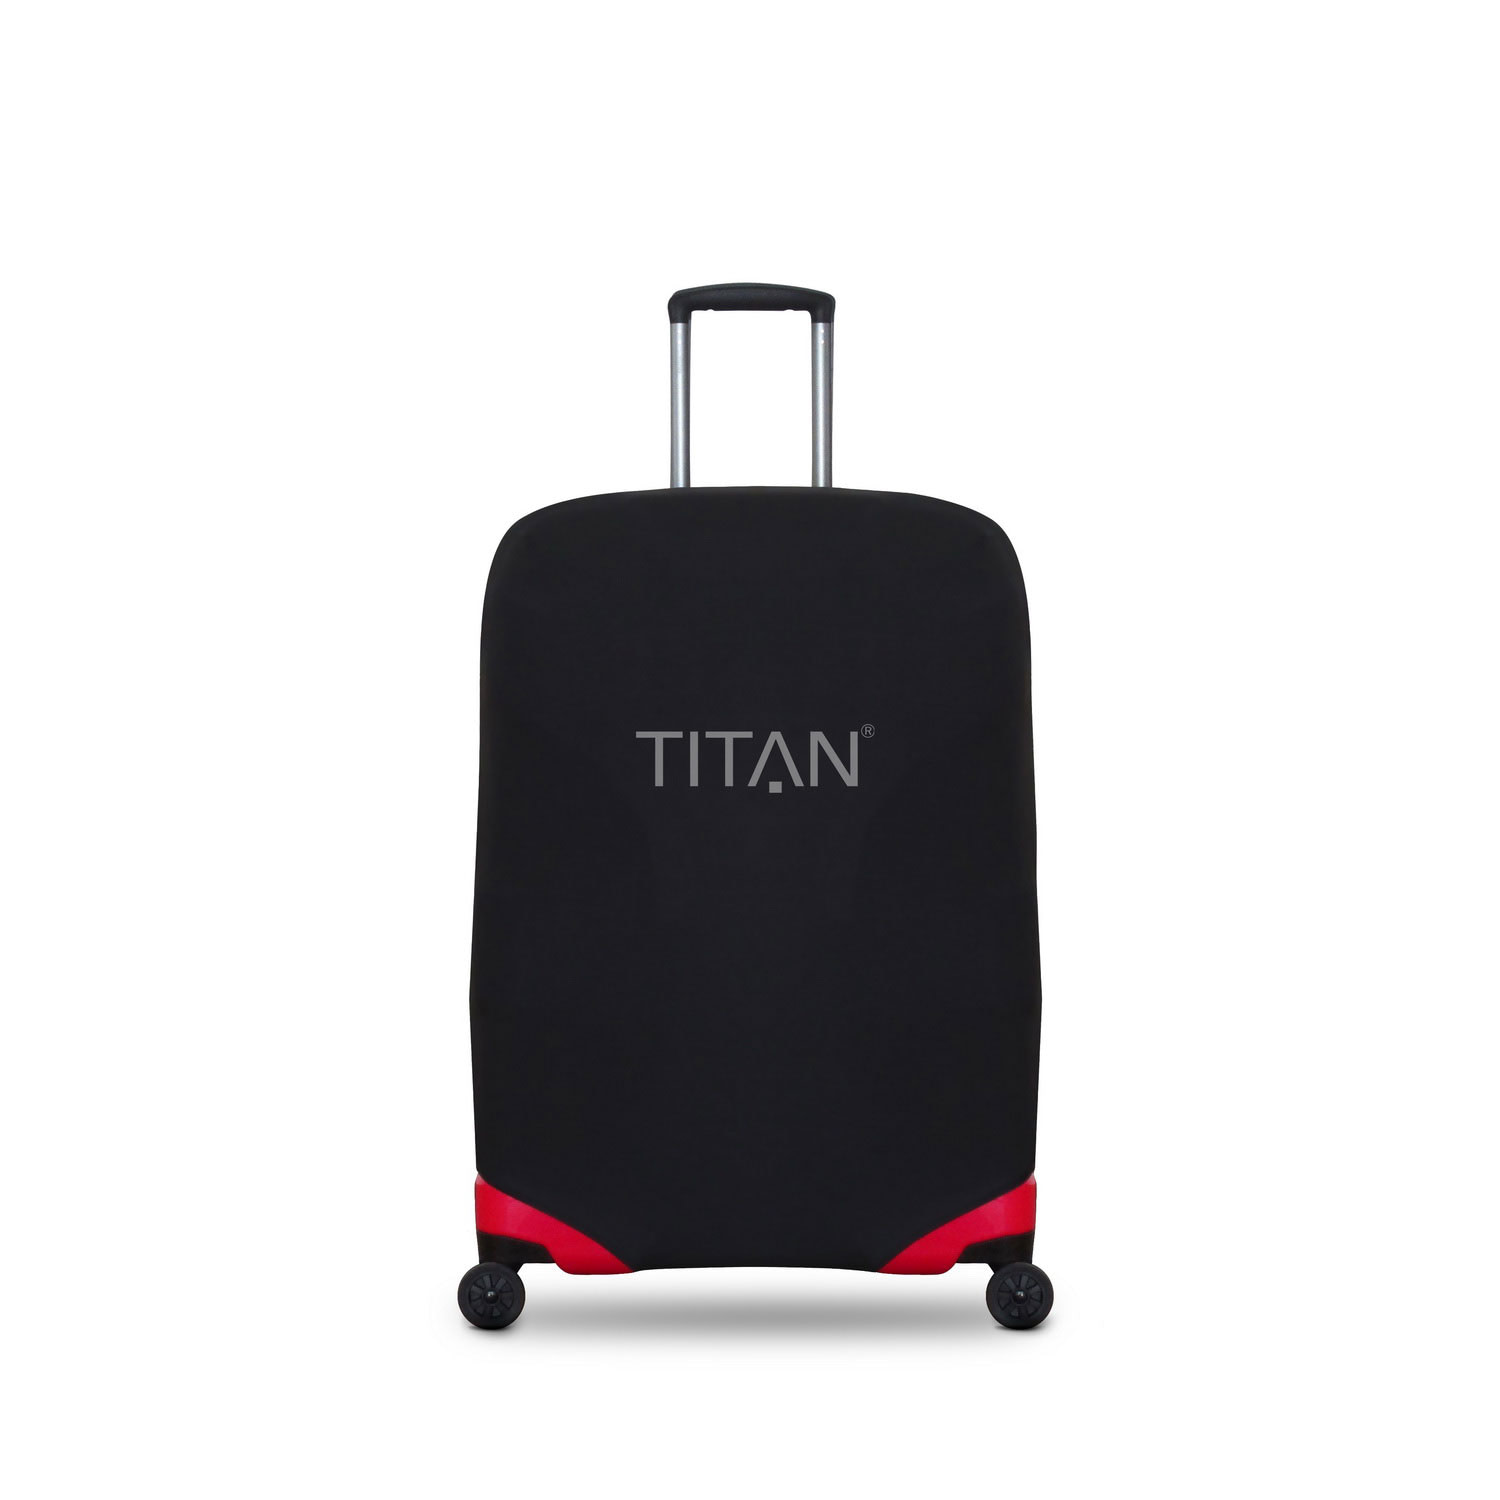 01_Luggage-Cover_VG